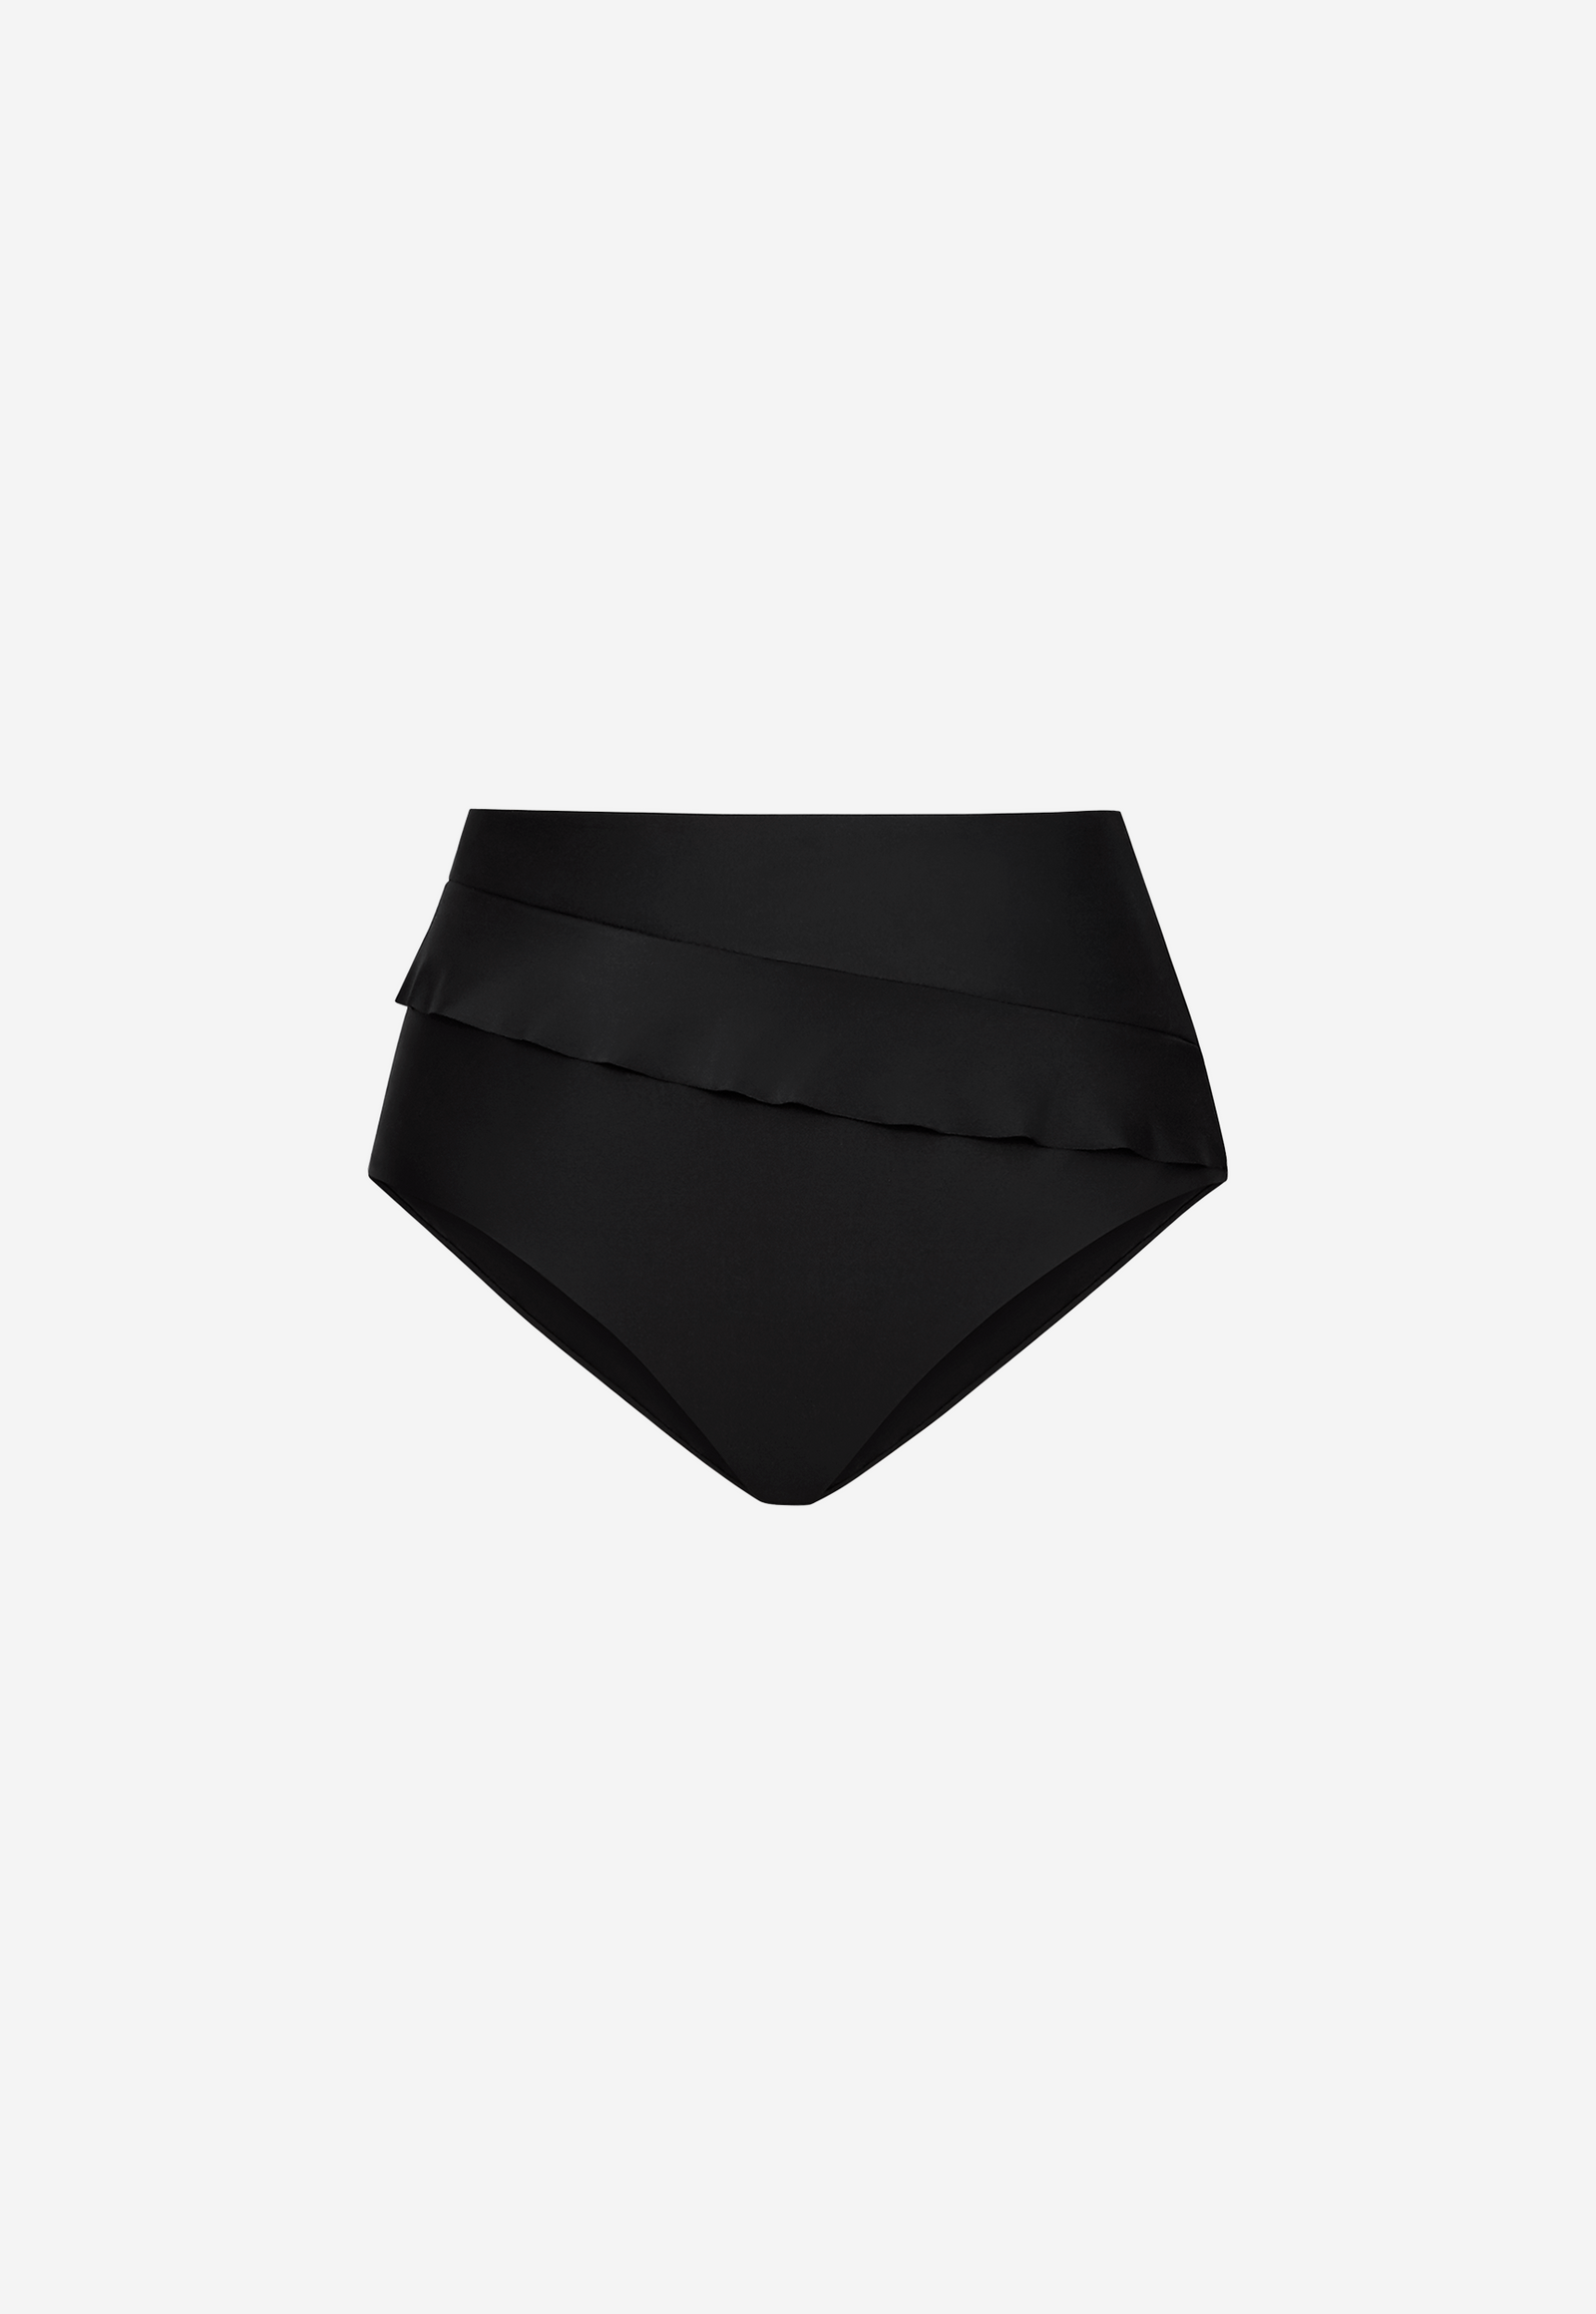 6 Shore Road Sea Glass Bikini Bottom Women's Black Bikini in XS, S, M, L - Summer 2018 Collection